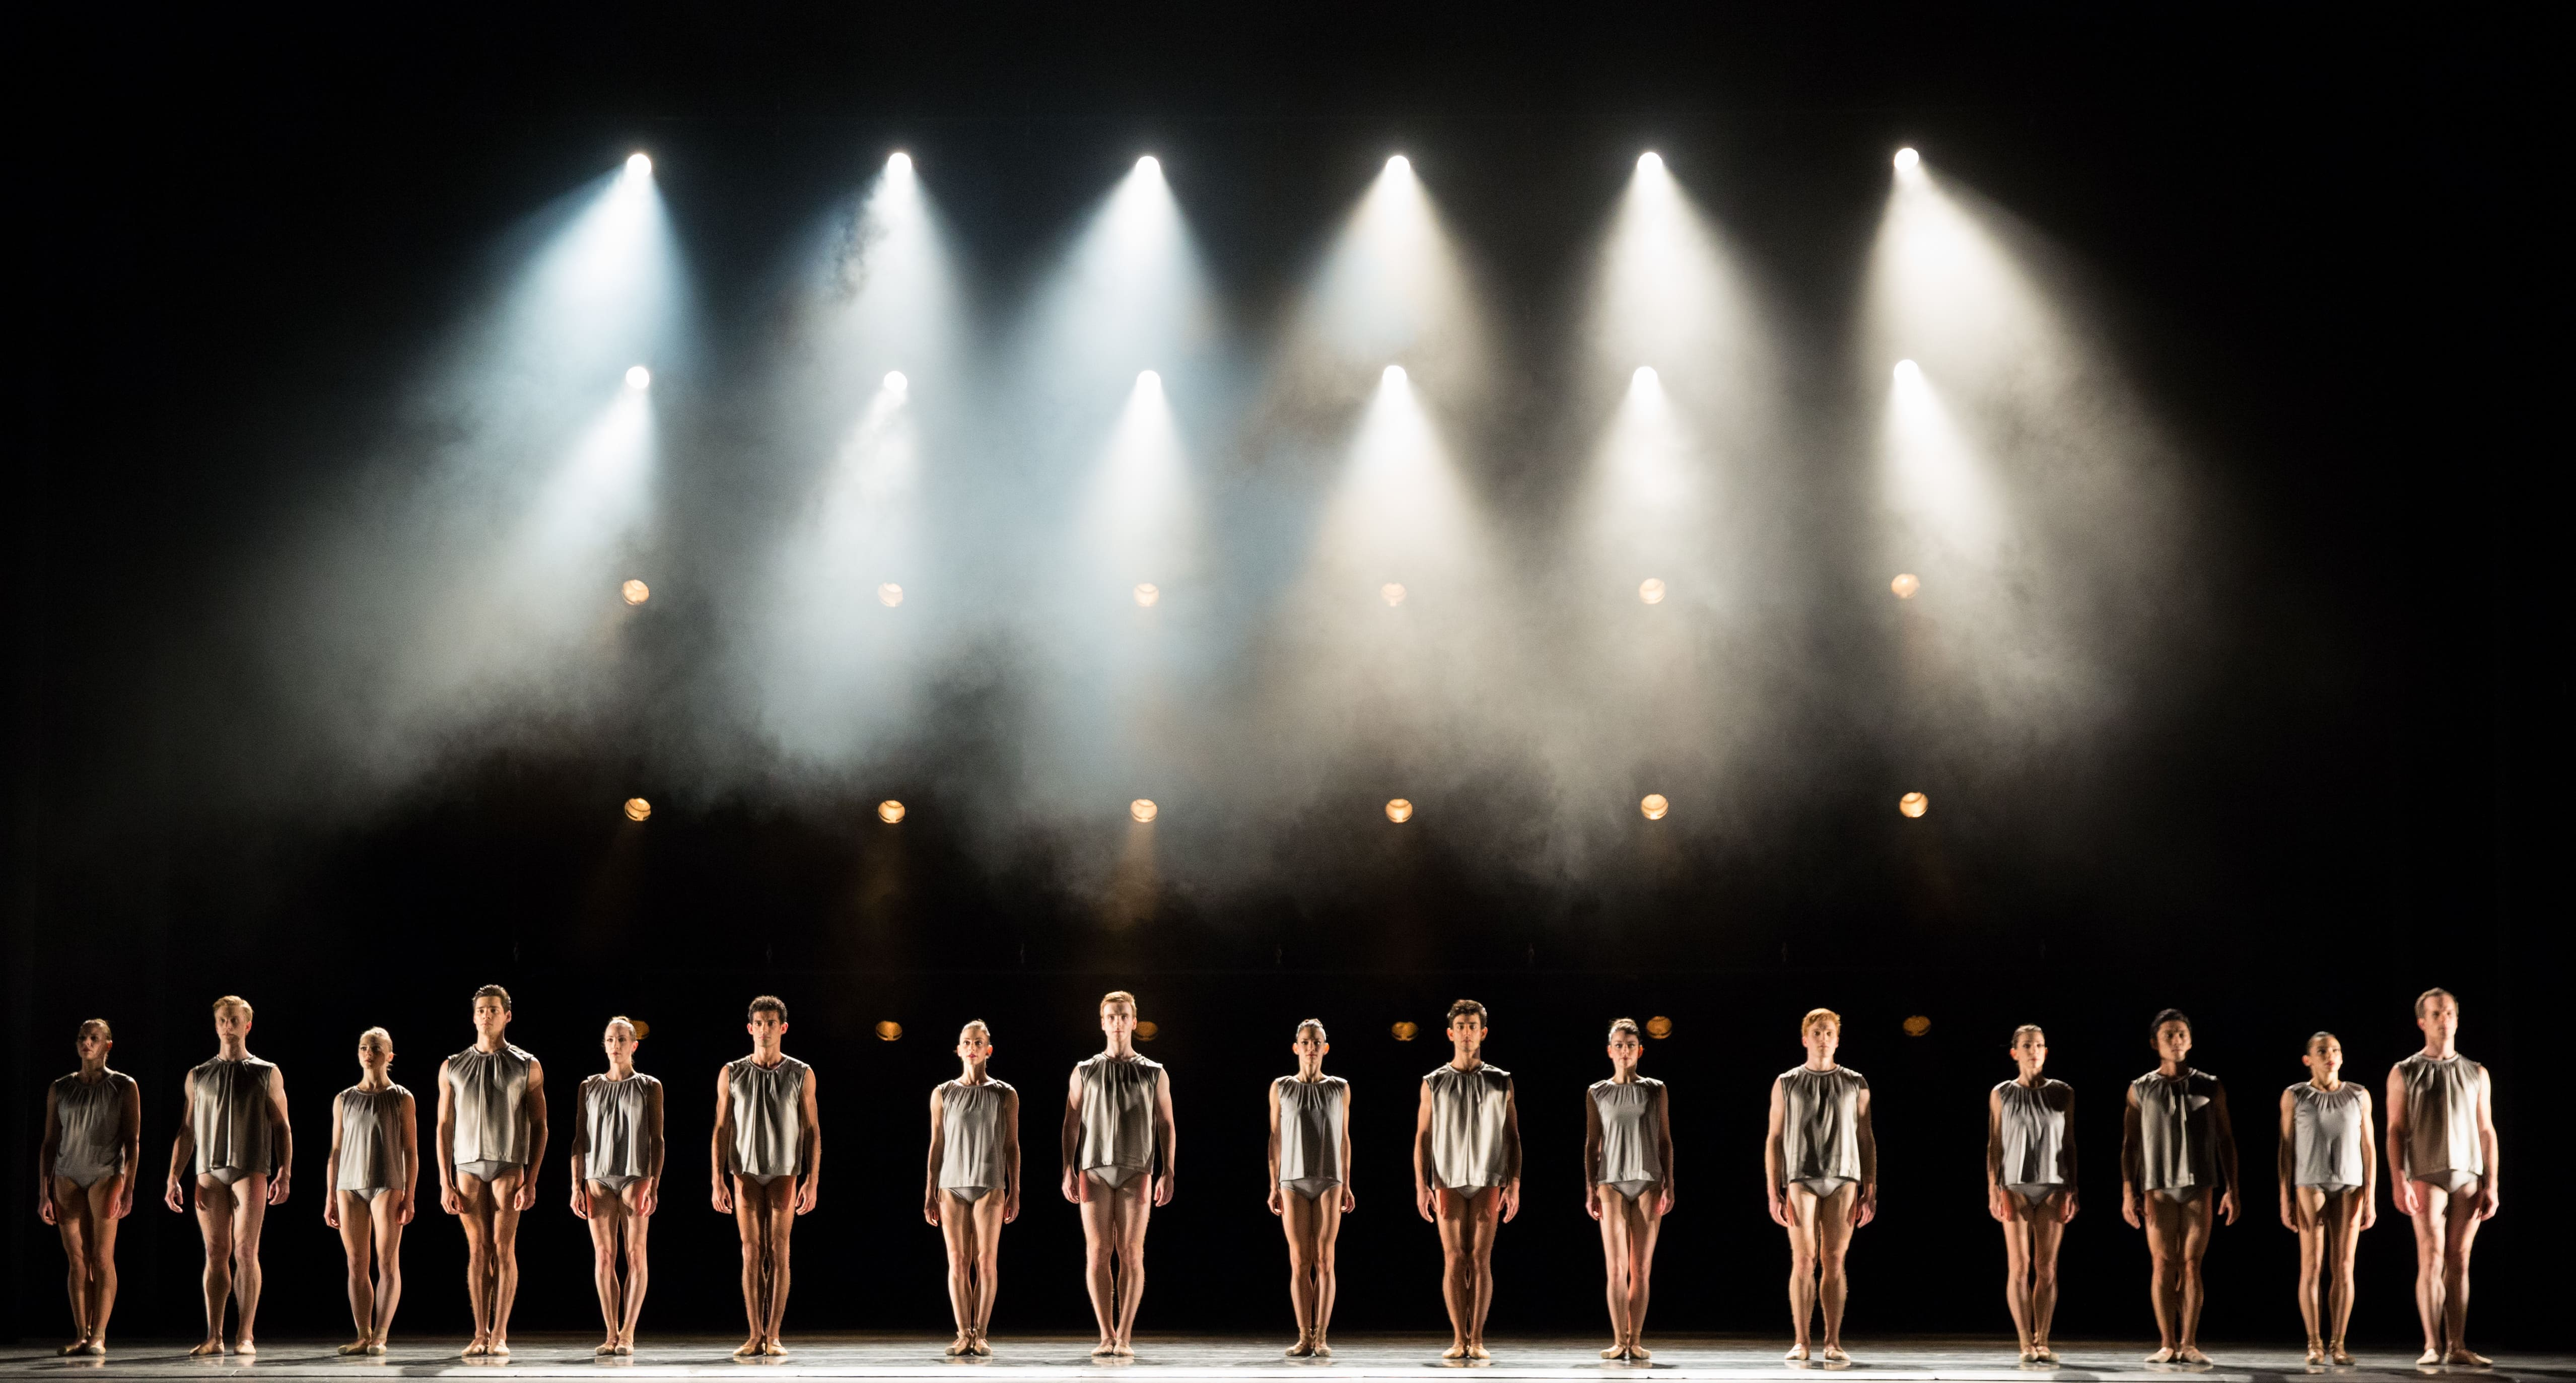 Miami City Ballet dancers in One Line Drawn, Choreography by Brian Brooks. Photo © Alexander Iziliaev.